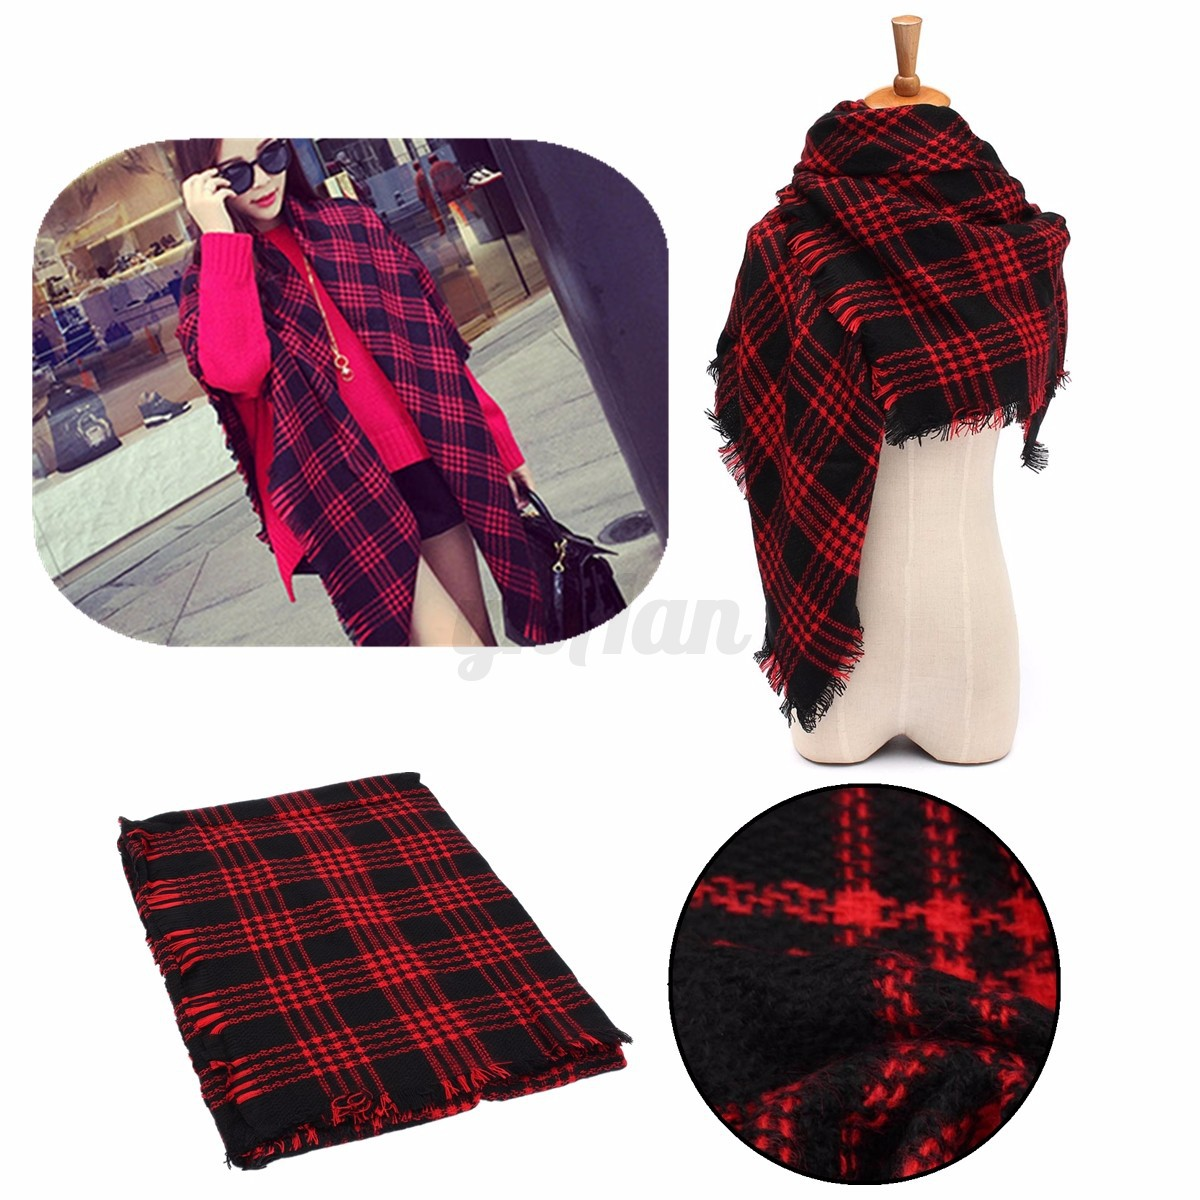 echarpe en laine cachemire ch le foulard cache nez tartan cossais hiver femme ebay. Black Bedroom Furniture Sets. Home Design Ideas